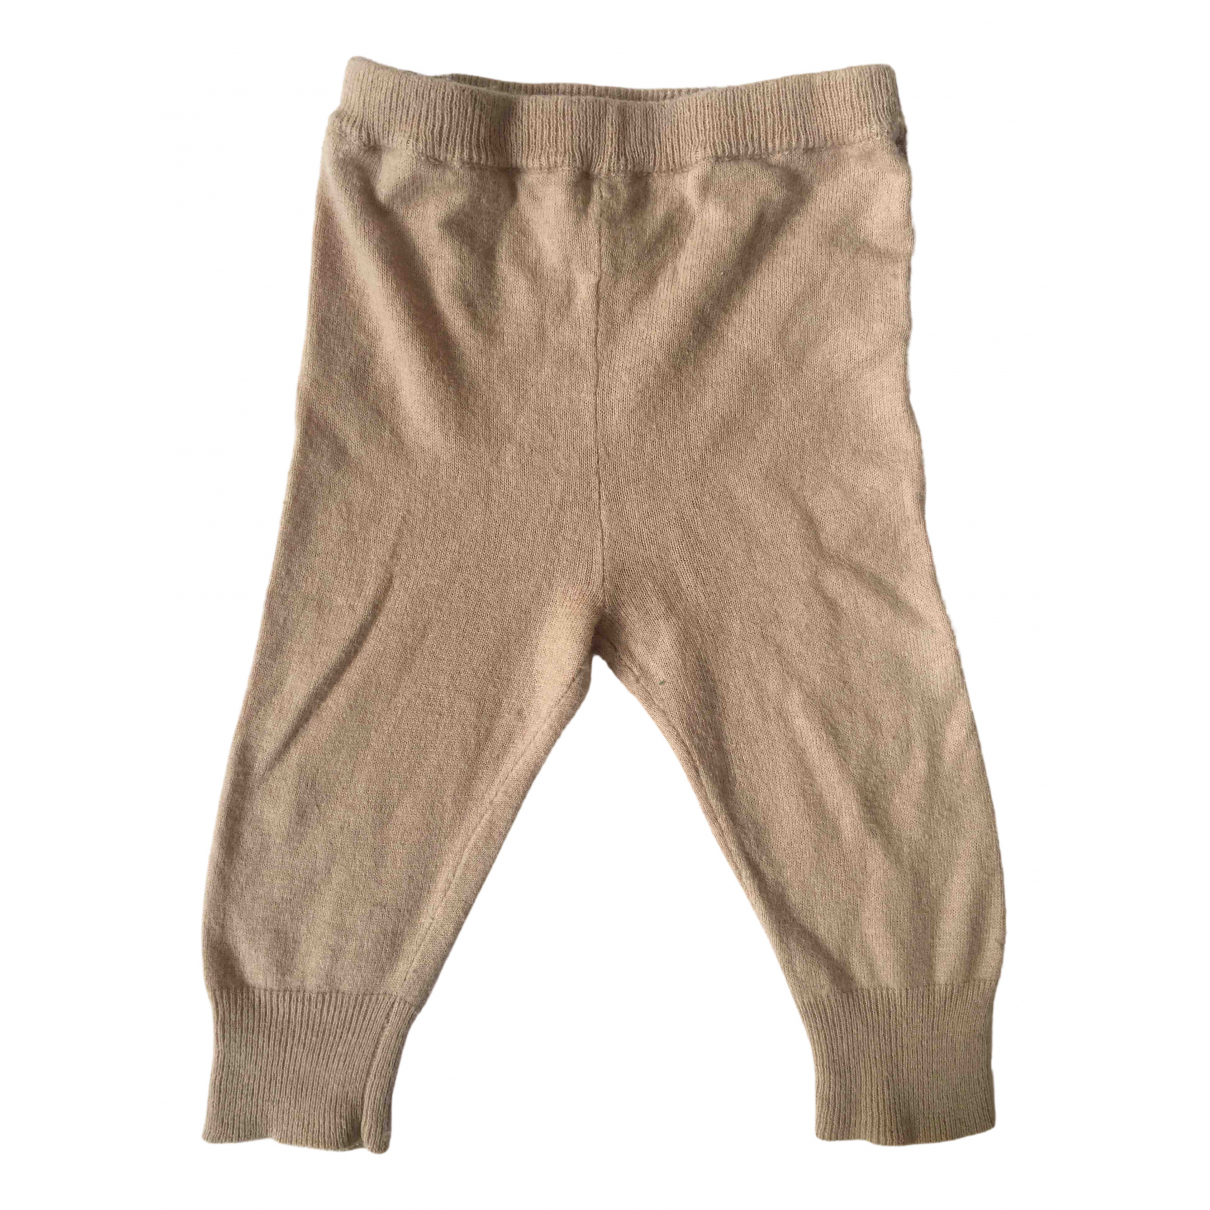 Caramel Baby & Child N Beige Cotton Trousers for Kids 6 months - until 26.5 inches UK